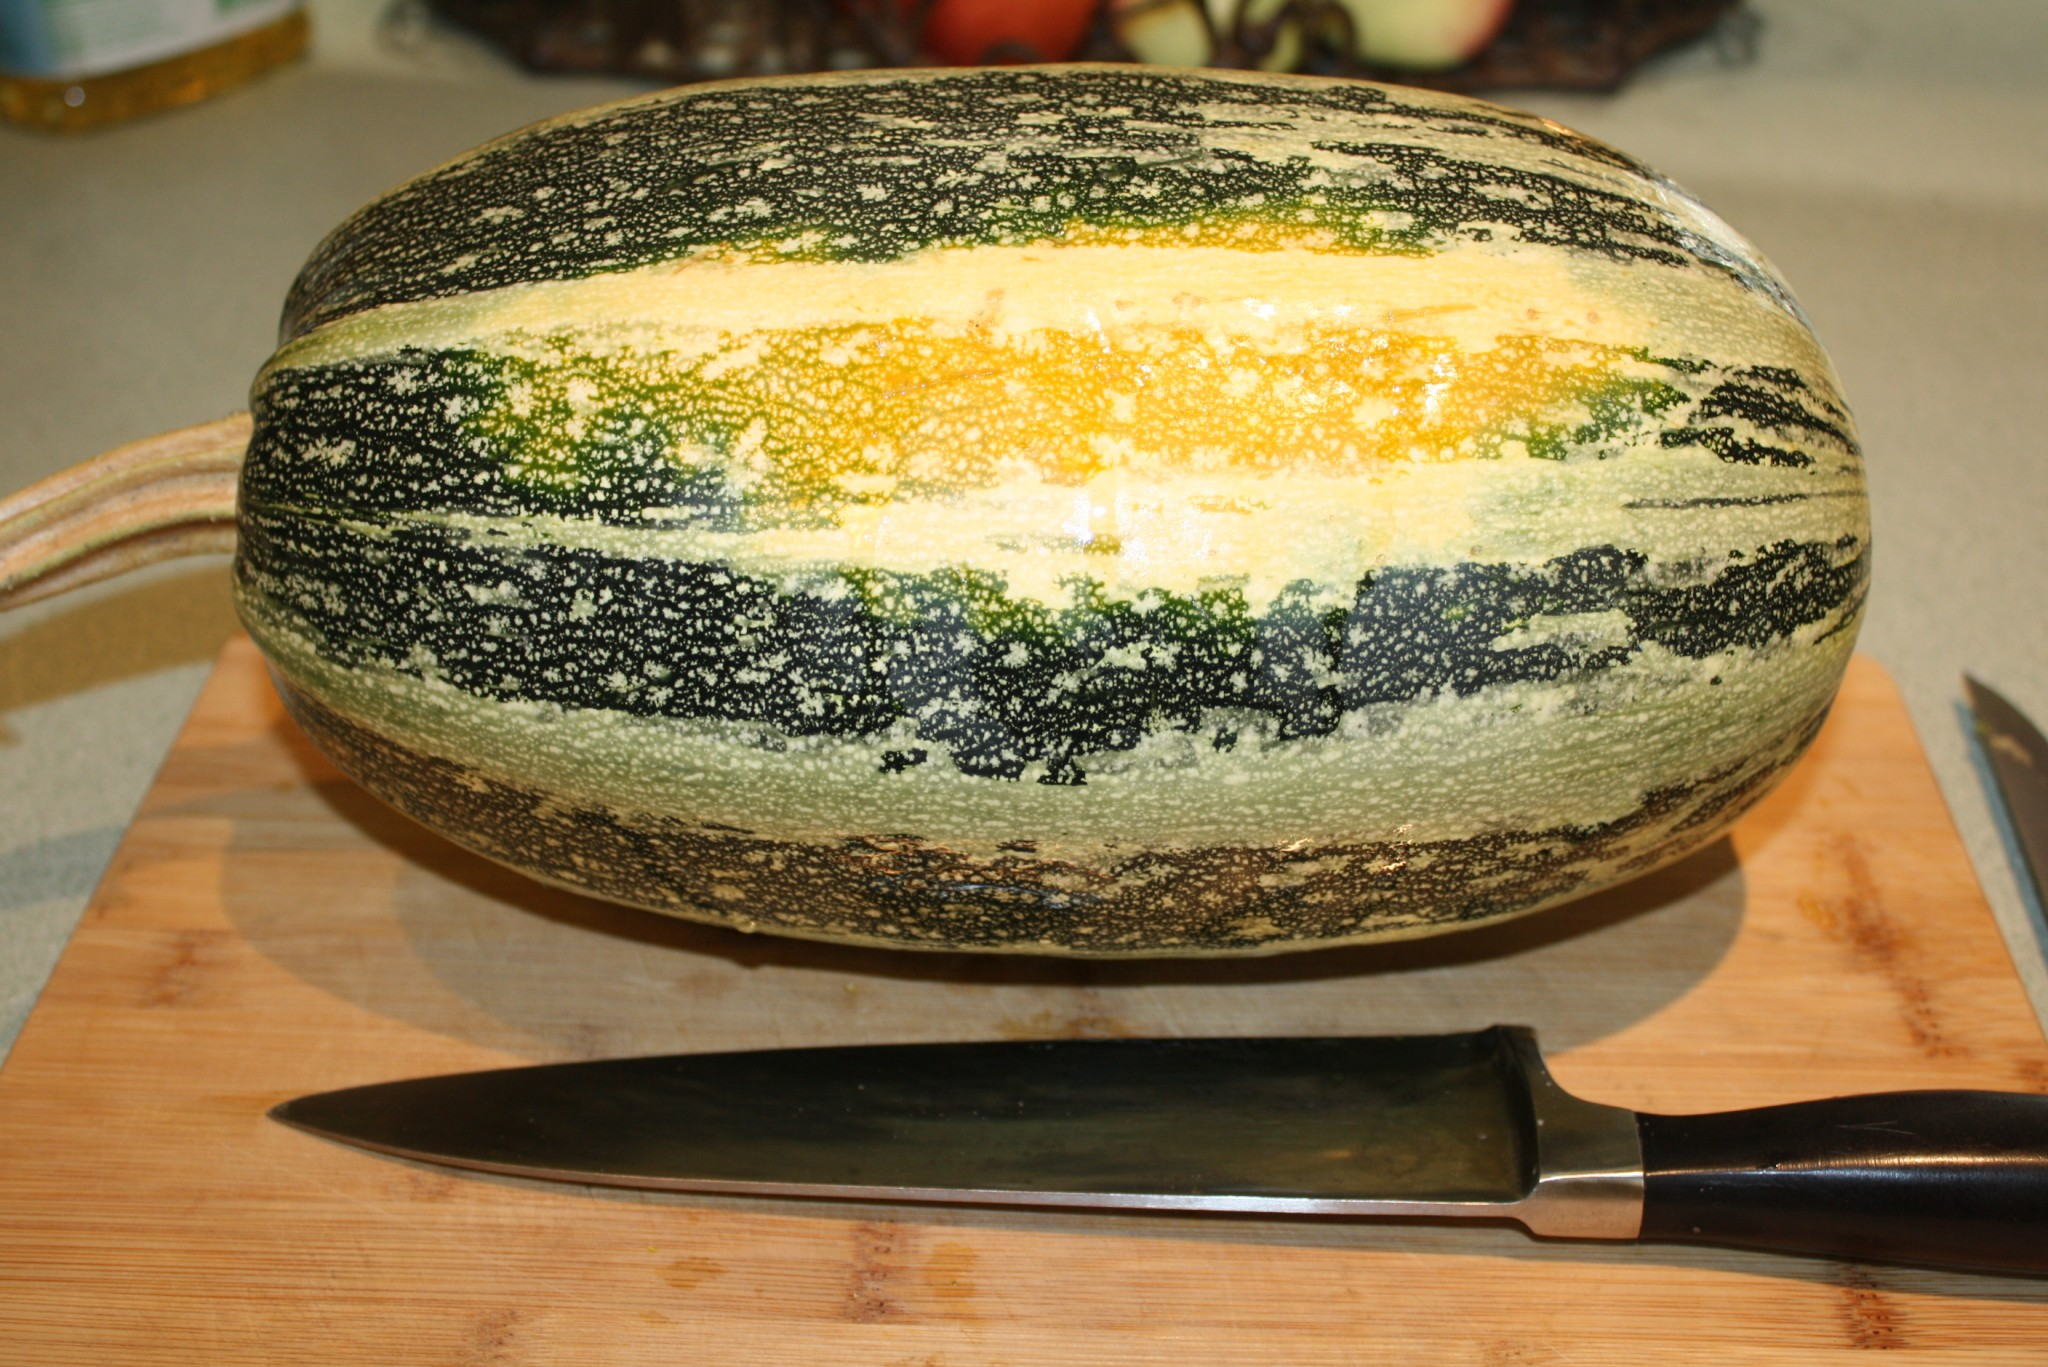 Swish Store Pumpkins Winter Squash When To Pick Spaghetti Squash From Vine When To Pick Summer Spaghetti Squash How To Harvest houzz-02 When To Pick Spaghetti Squash